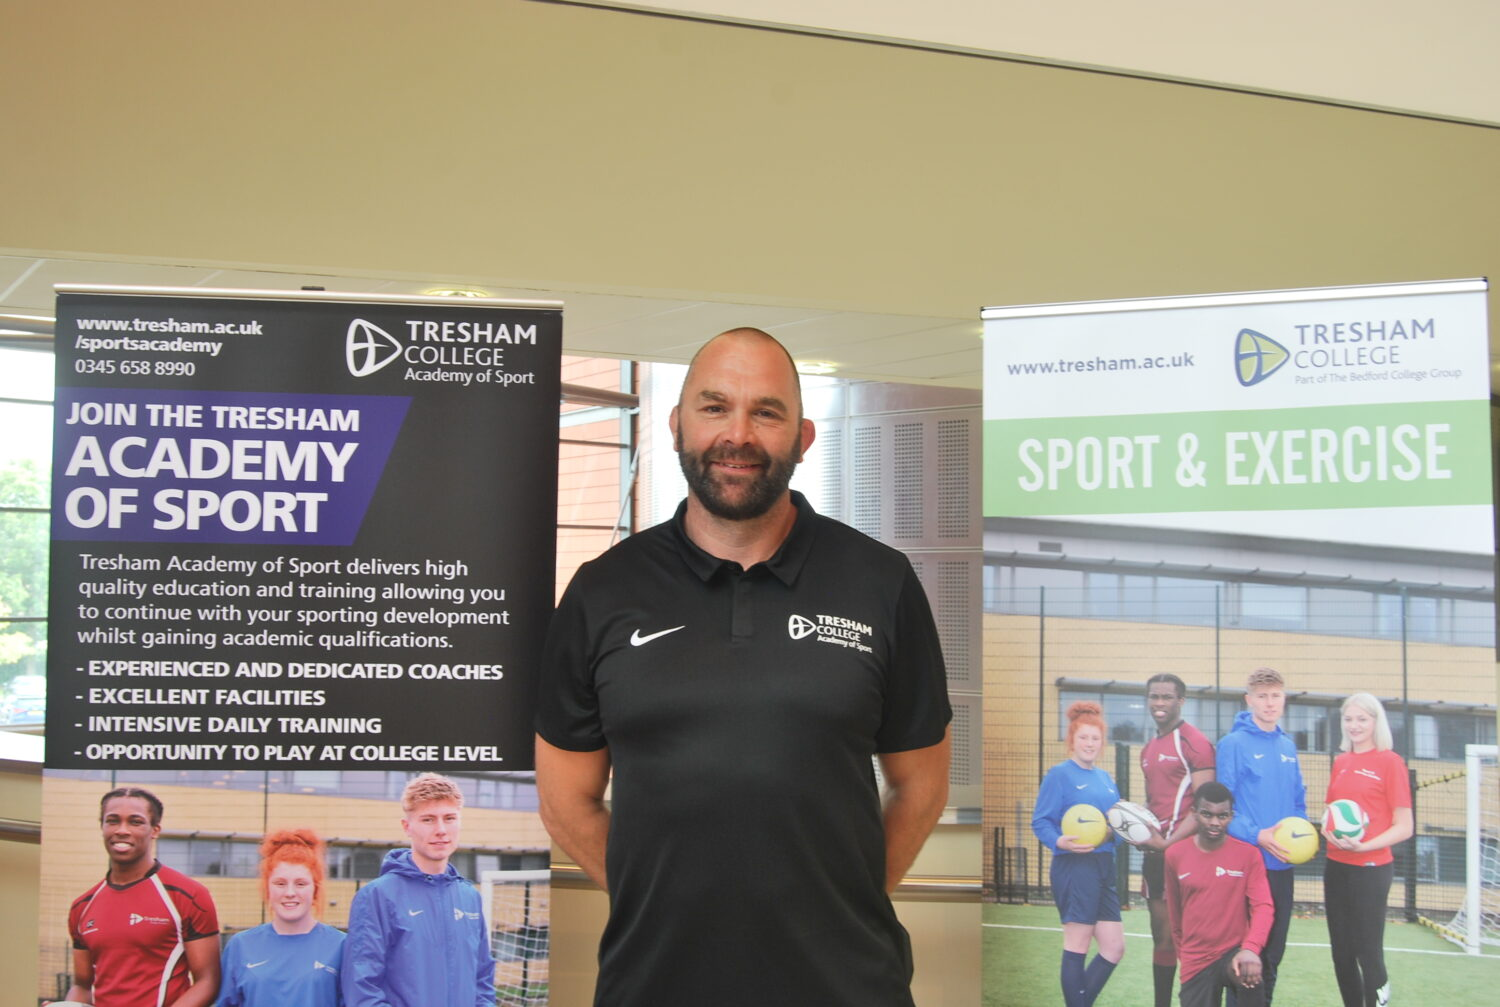 Tresham College Jon Phillips appointed as Head Rugby Coach